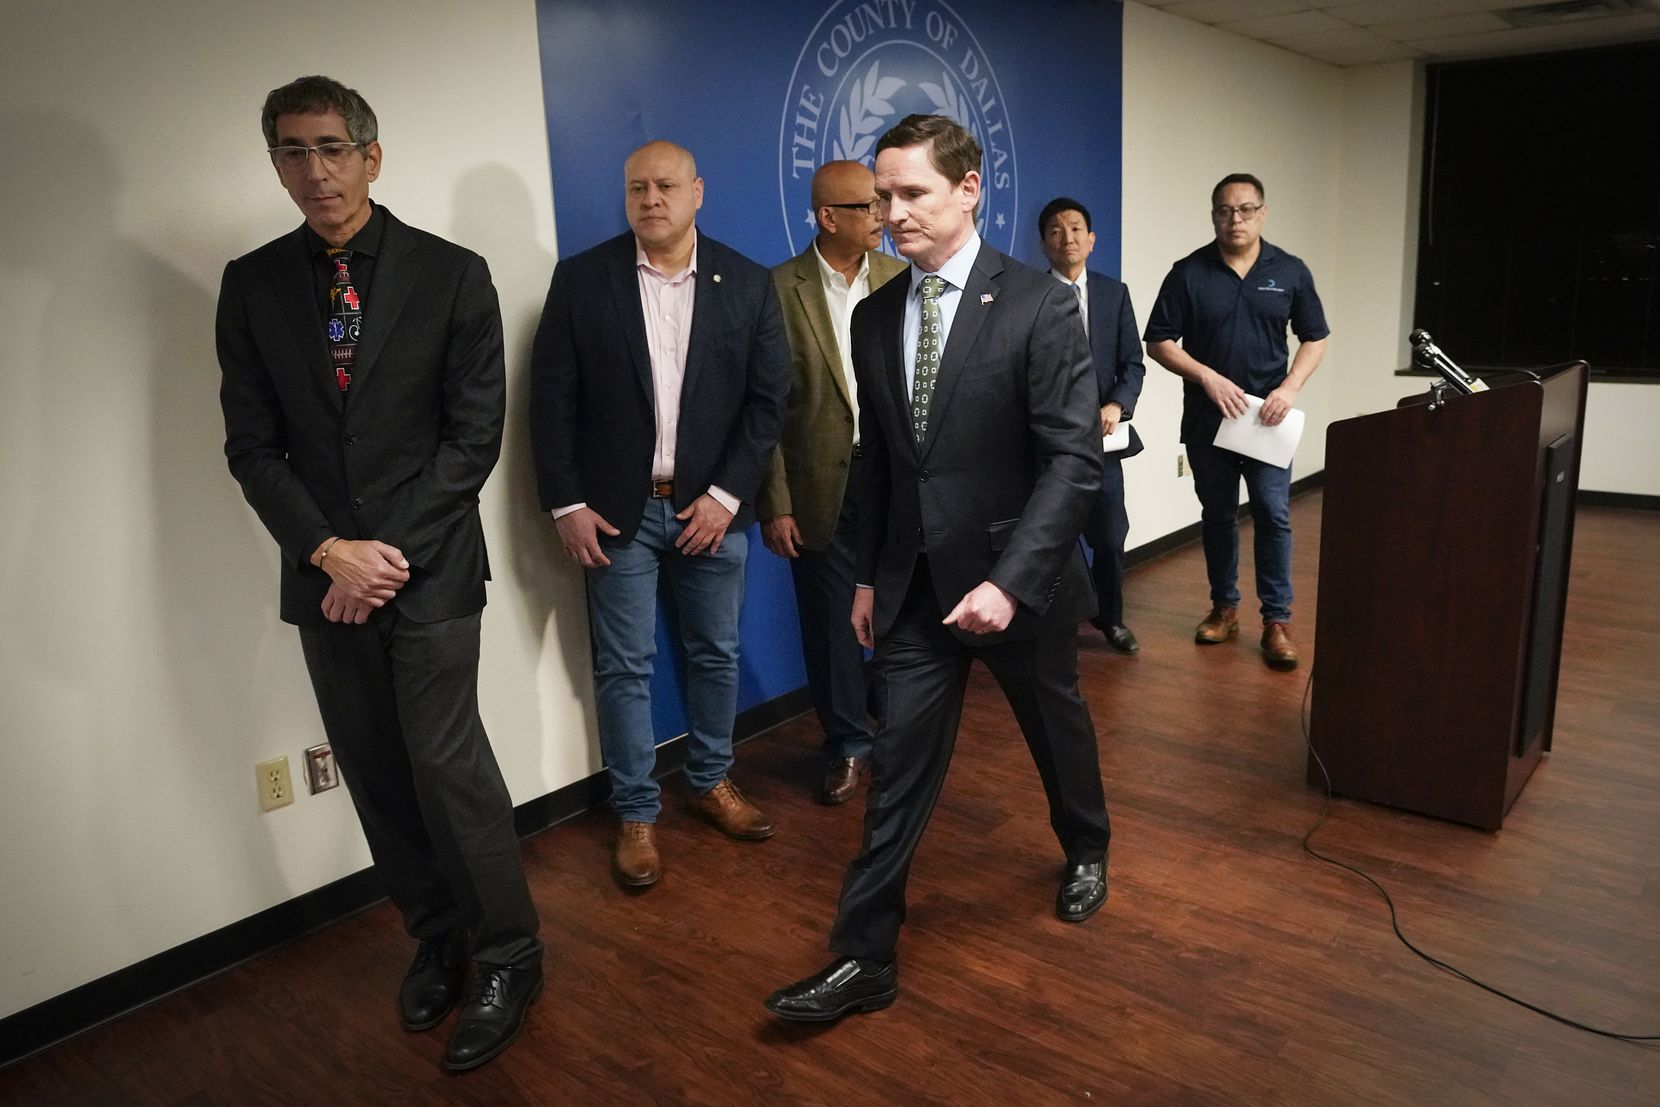 Dallas County Judge Clay Jenkins (center) departed a news conference with other city and county officials after announcing a state of disaster as the coronavirus began to spread in Dallas in early March.